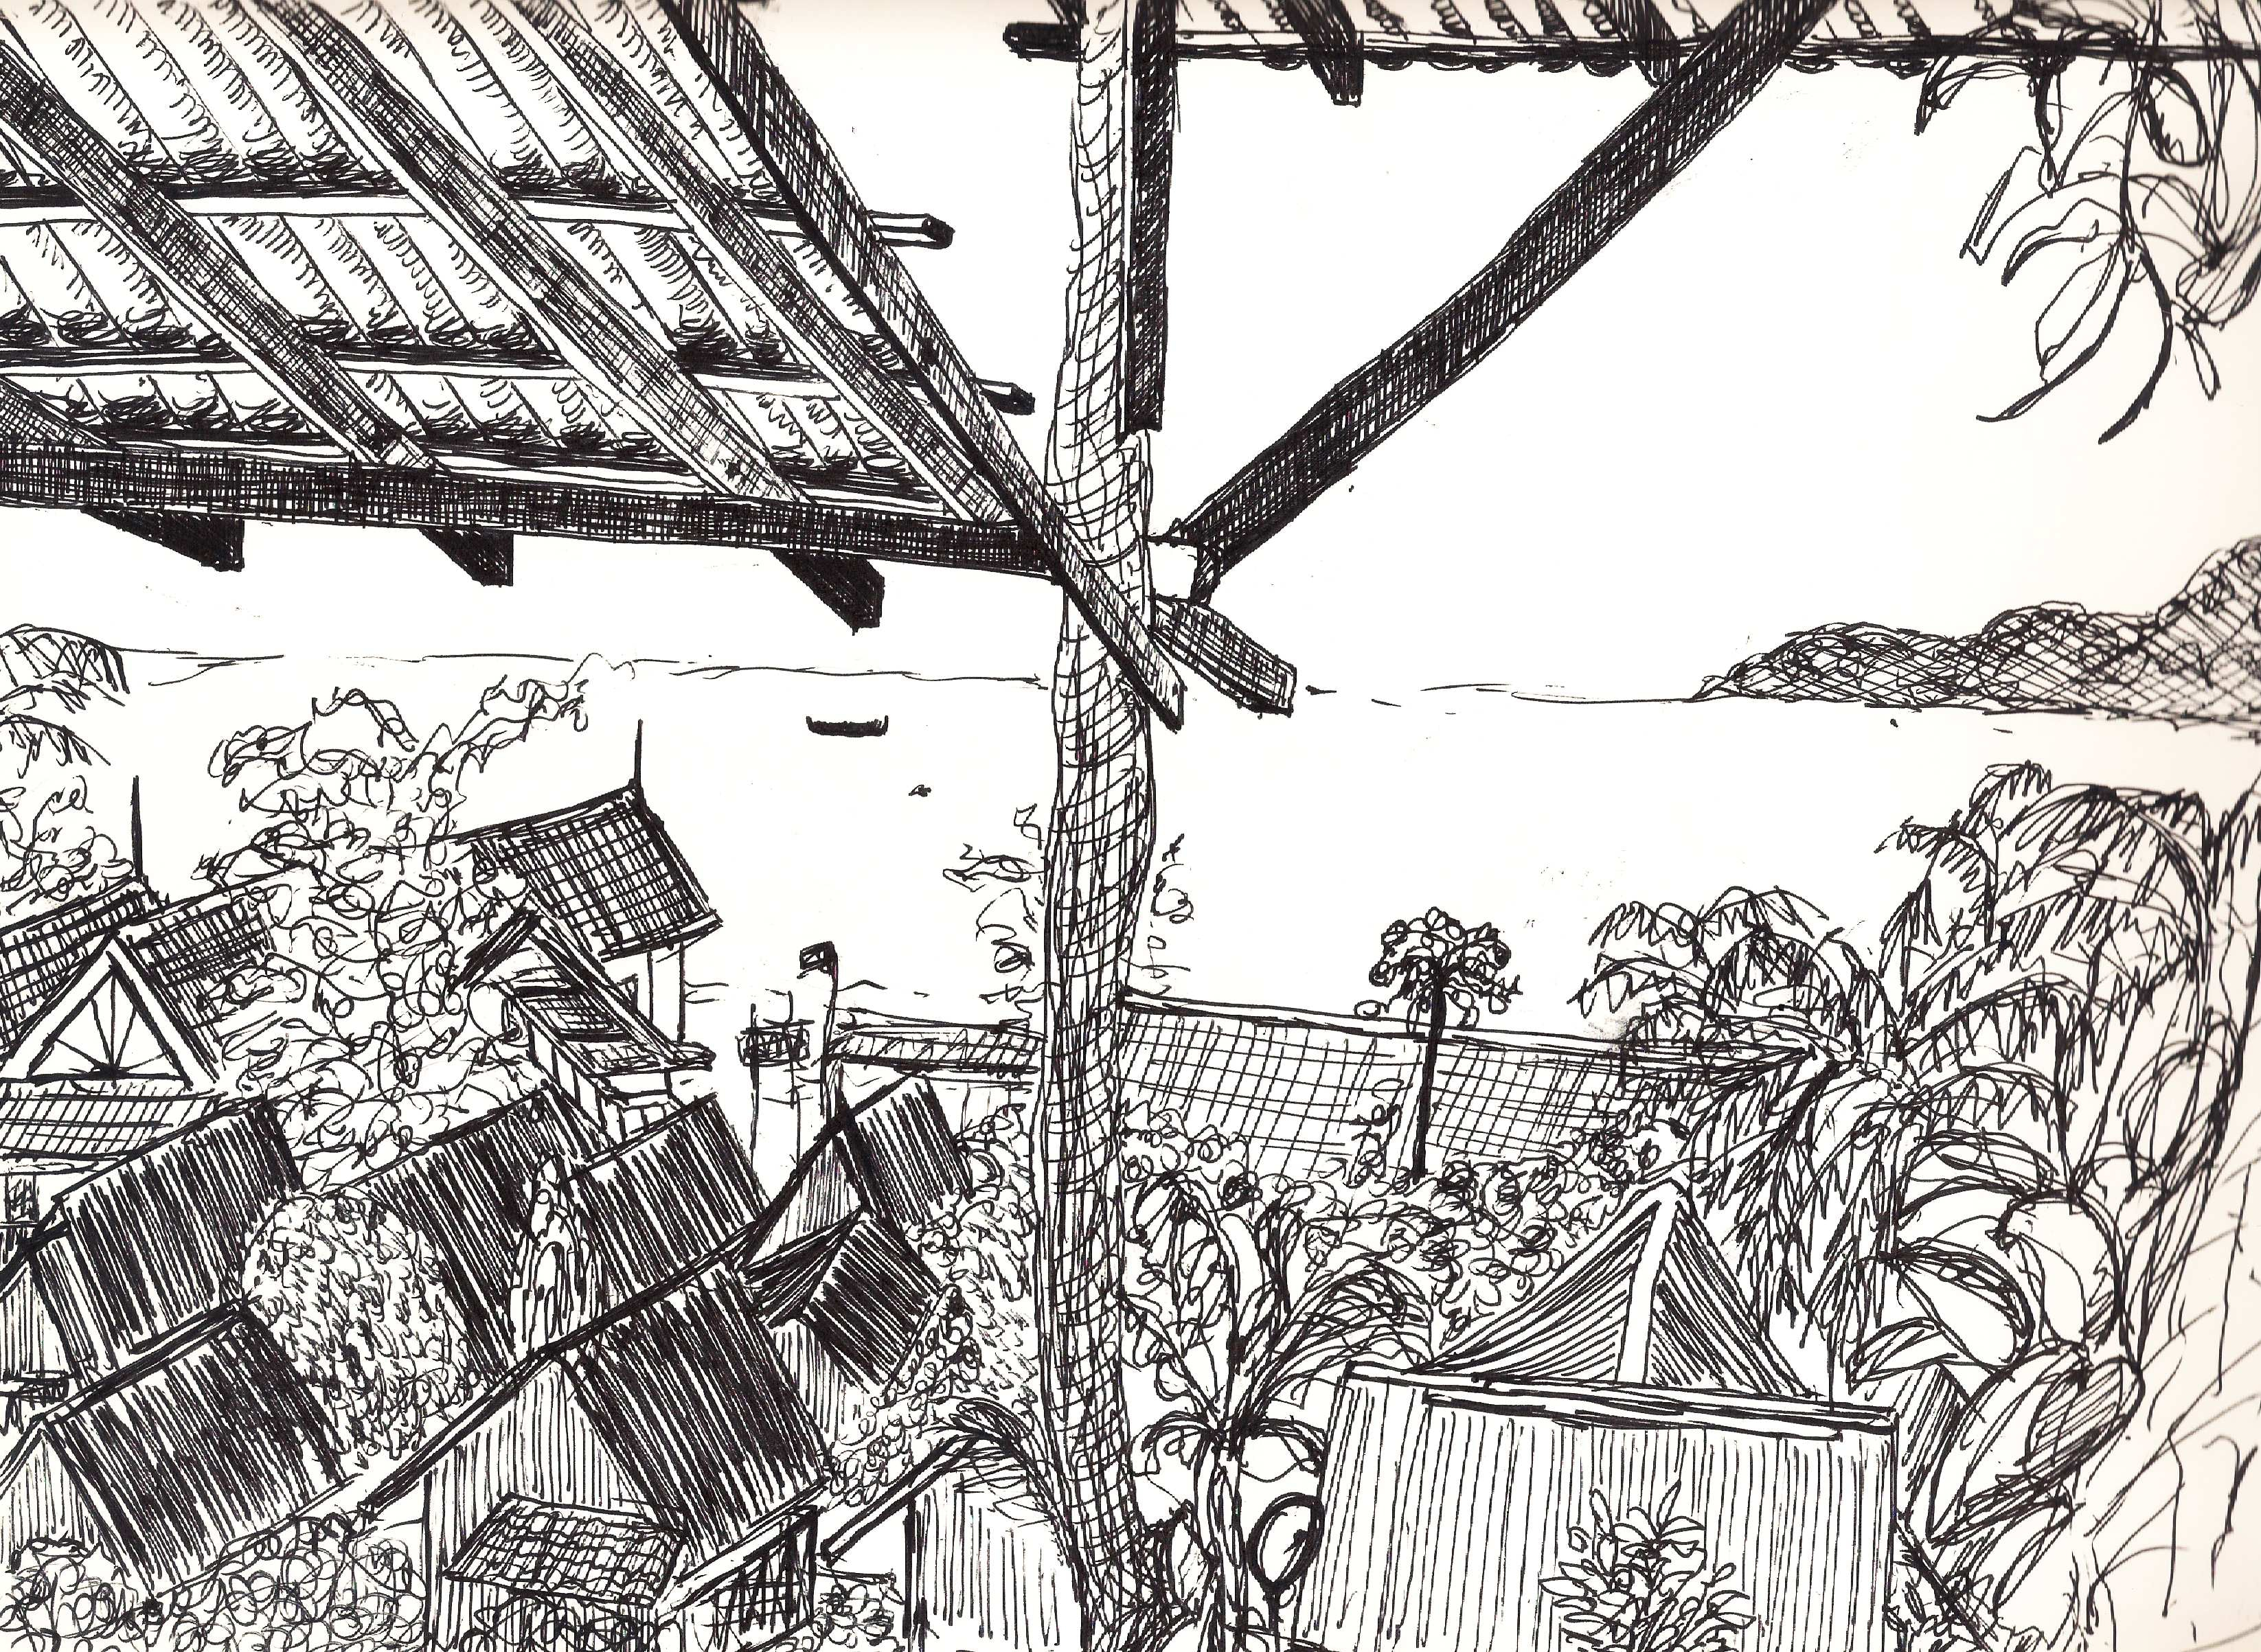 Perhentian ink sketch by Vickie Chan